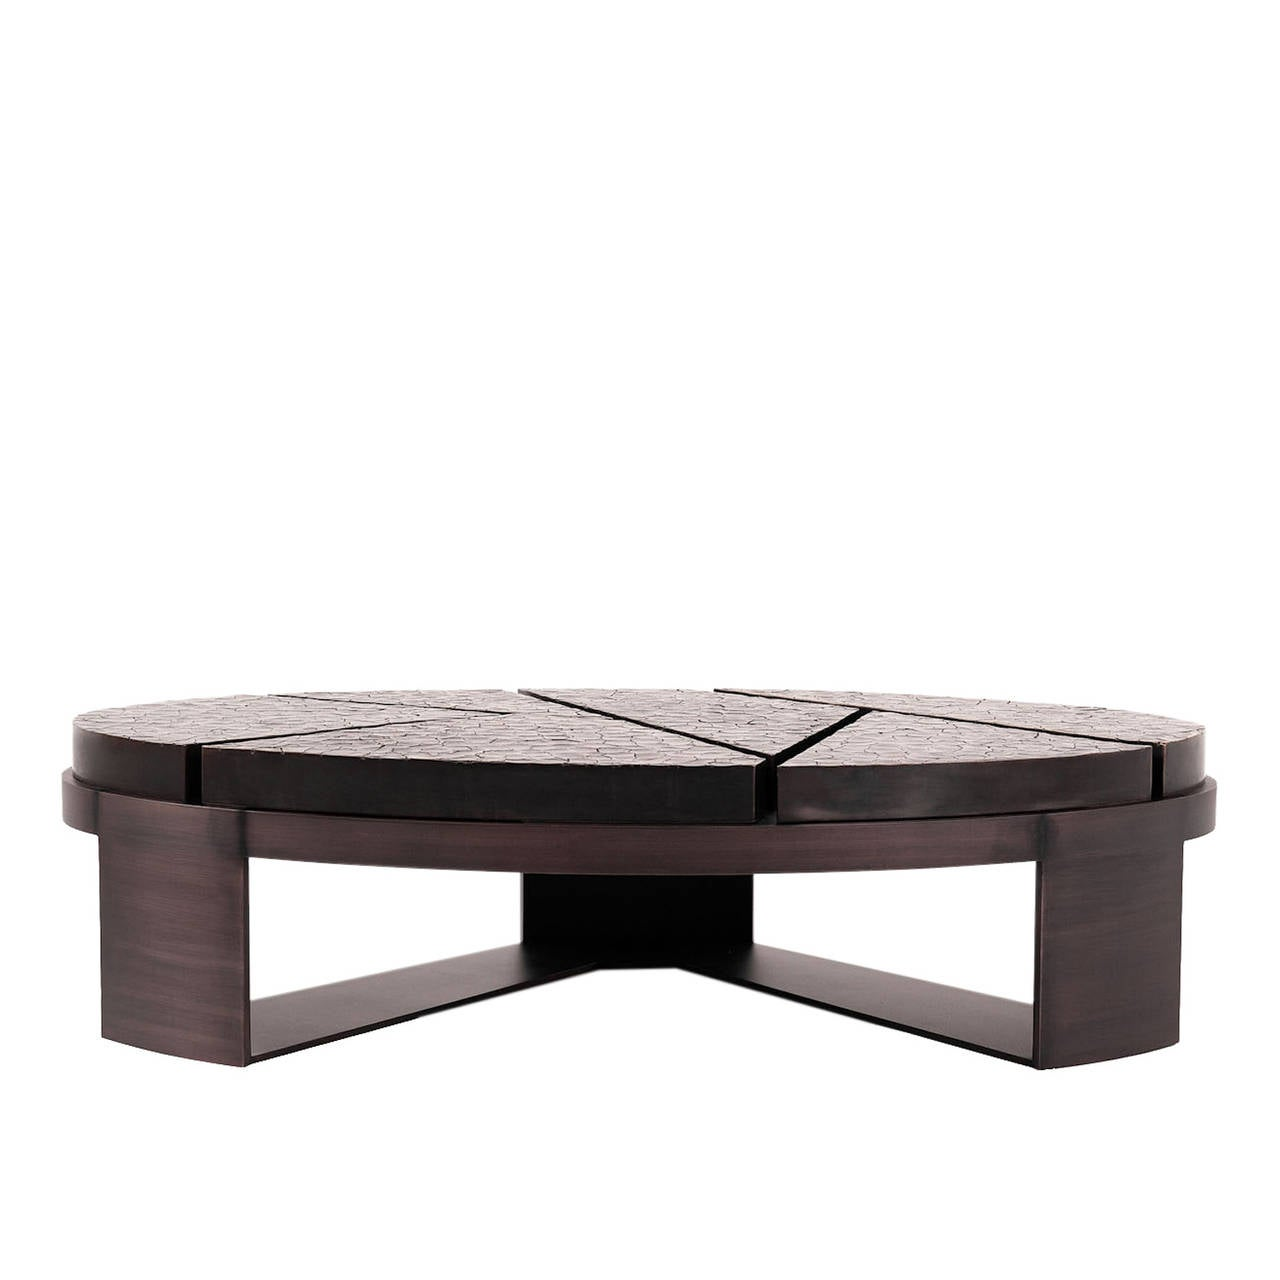 A unique oval coffee table, designed with a specialized cracked earth bronze patina top, inspired by the cracked landscape of South Africa, sits proudly above an exquisite bronze patina base.   This item is made to order with a lead time of 10-12